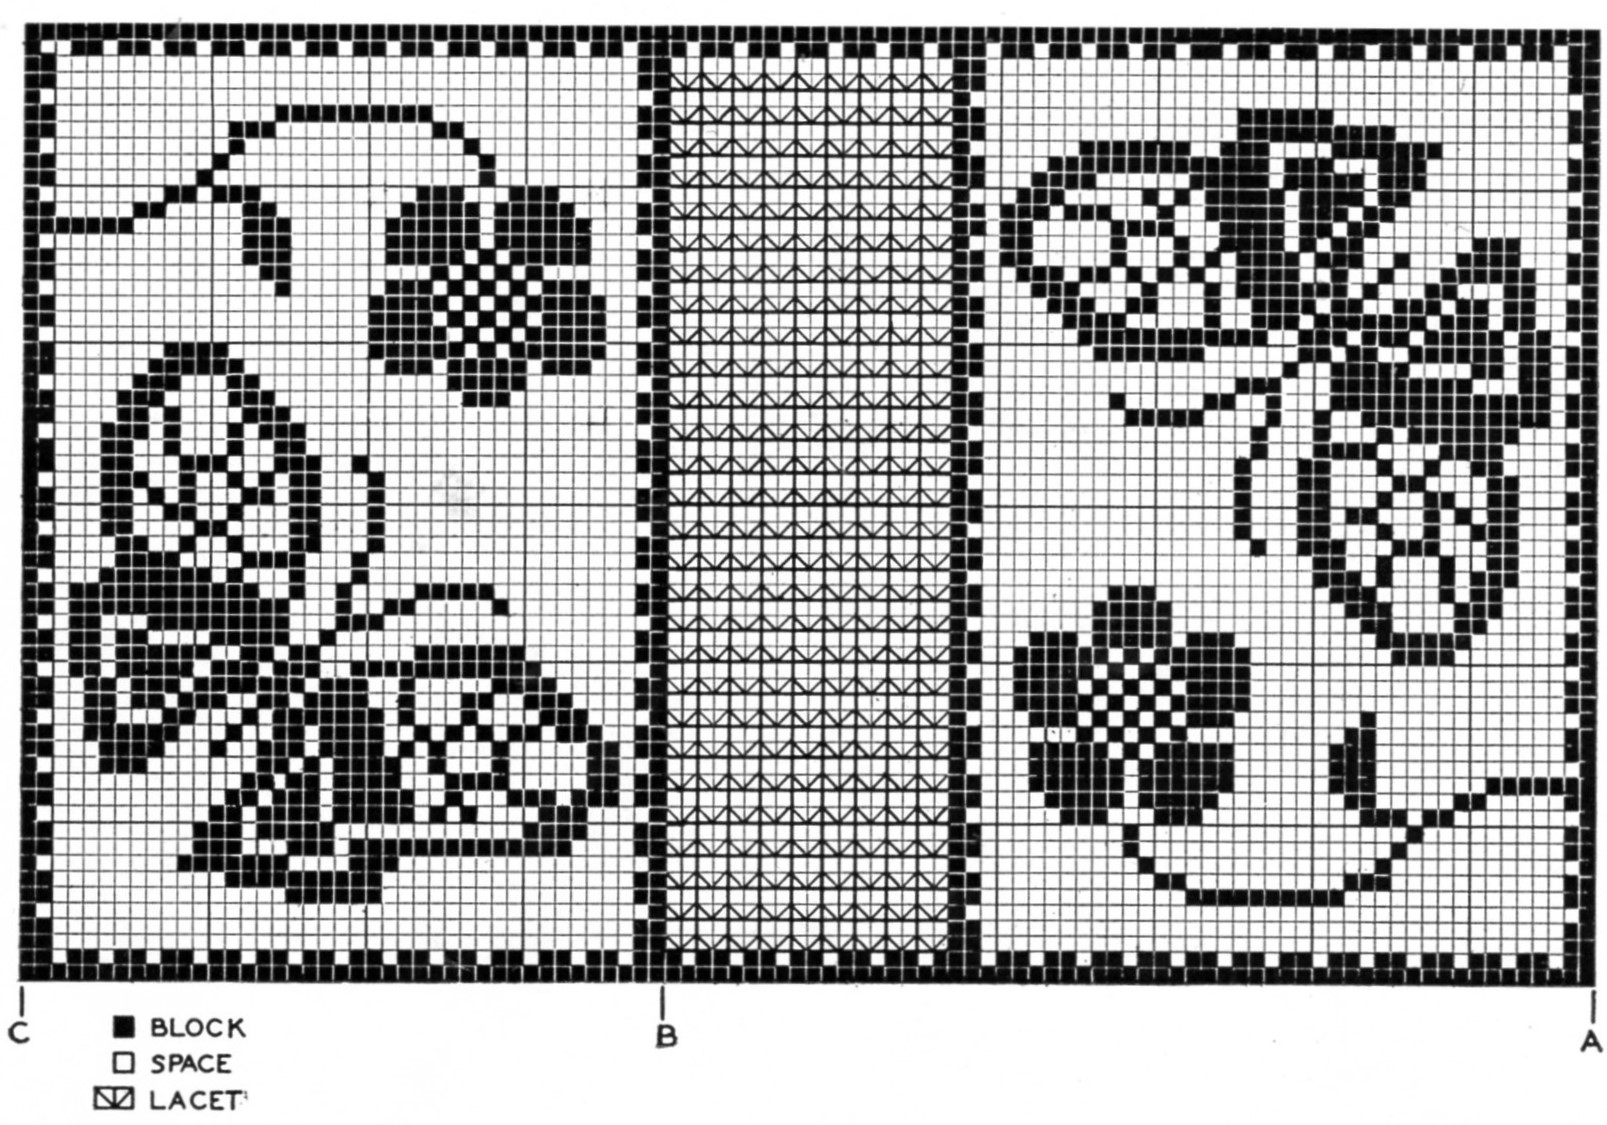 Butterflies in the Garden Filet Crochet Chart